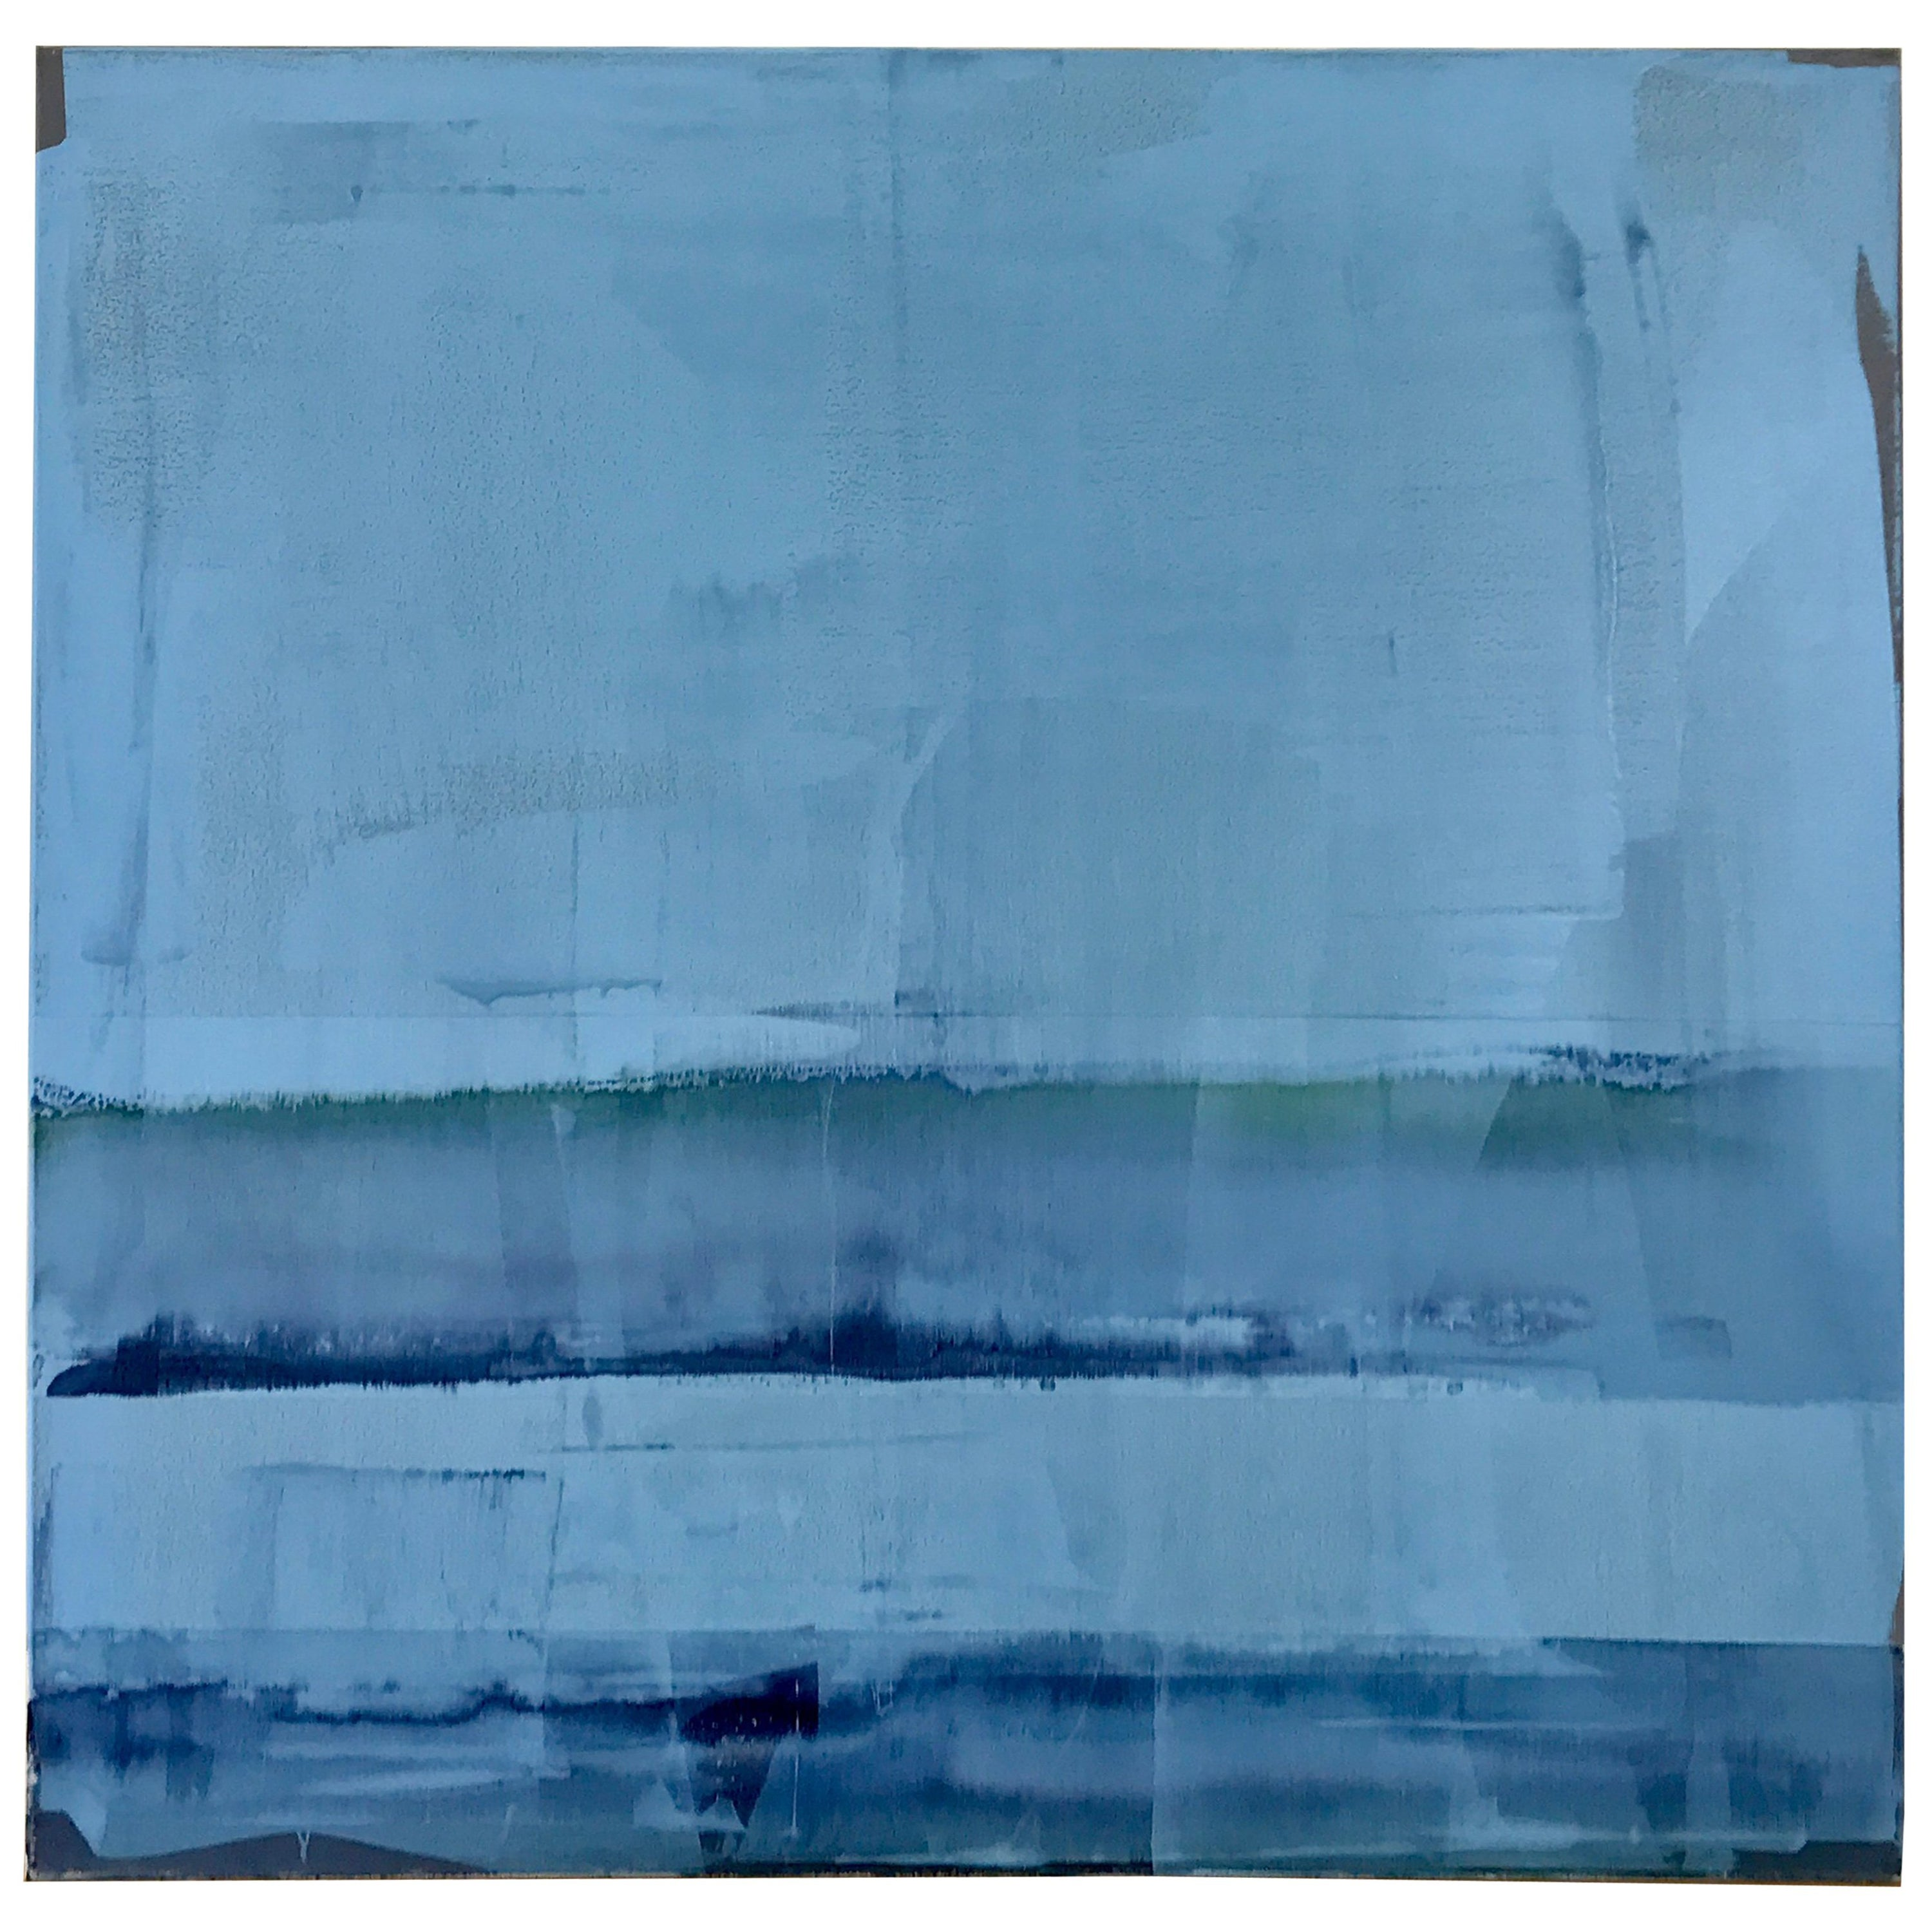 """Abstract Light Blue Painting Titled """"Sea Glass"""" by Rebecca Ruoff, 2018"""